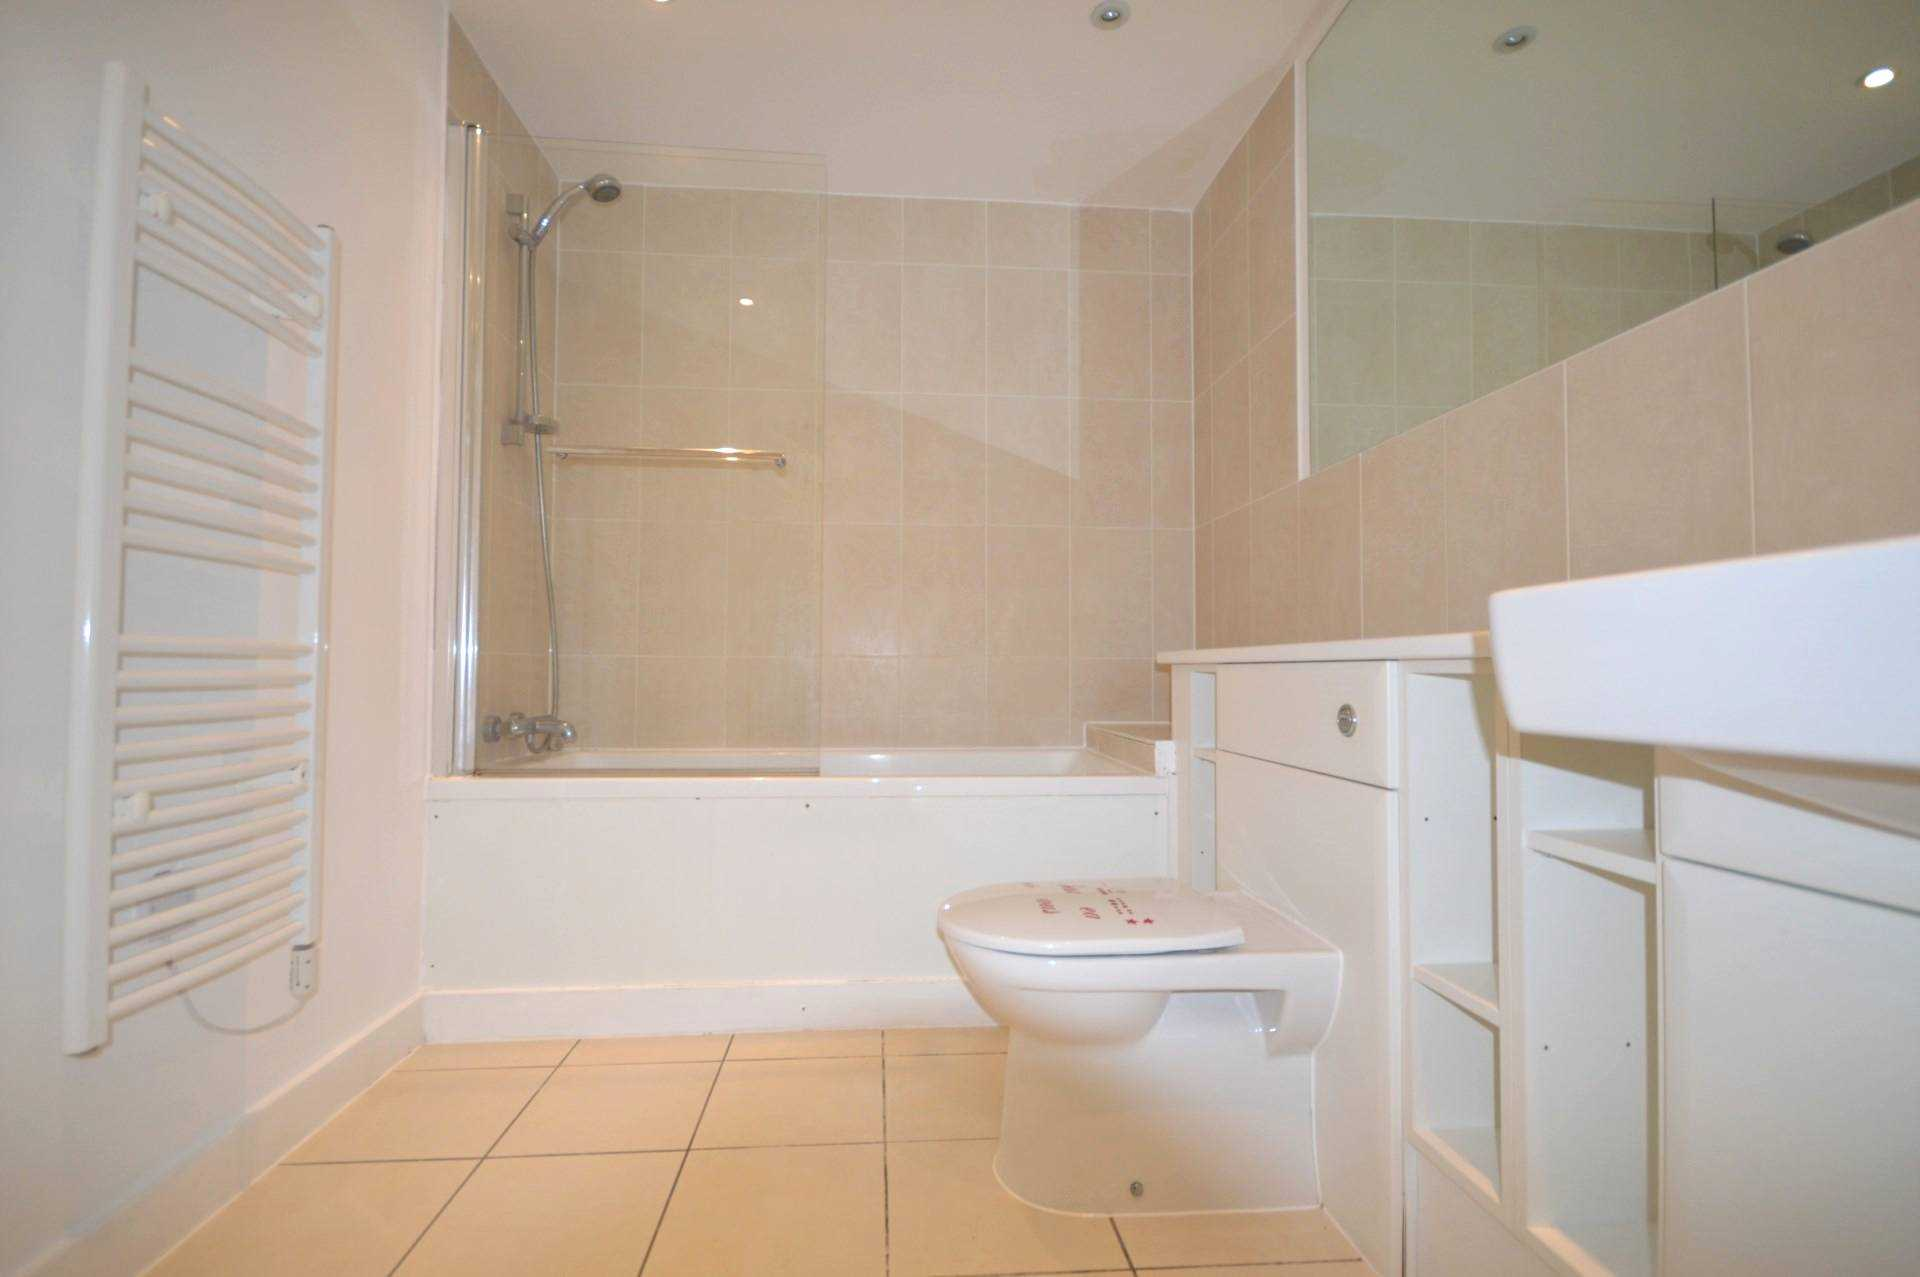 2 Bedroom Apartment For Sale Drift Court Basin Approach